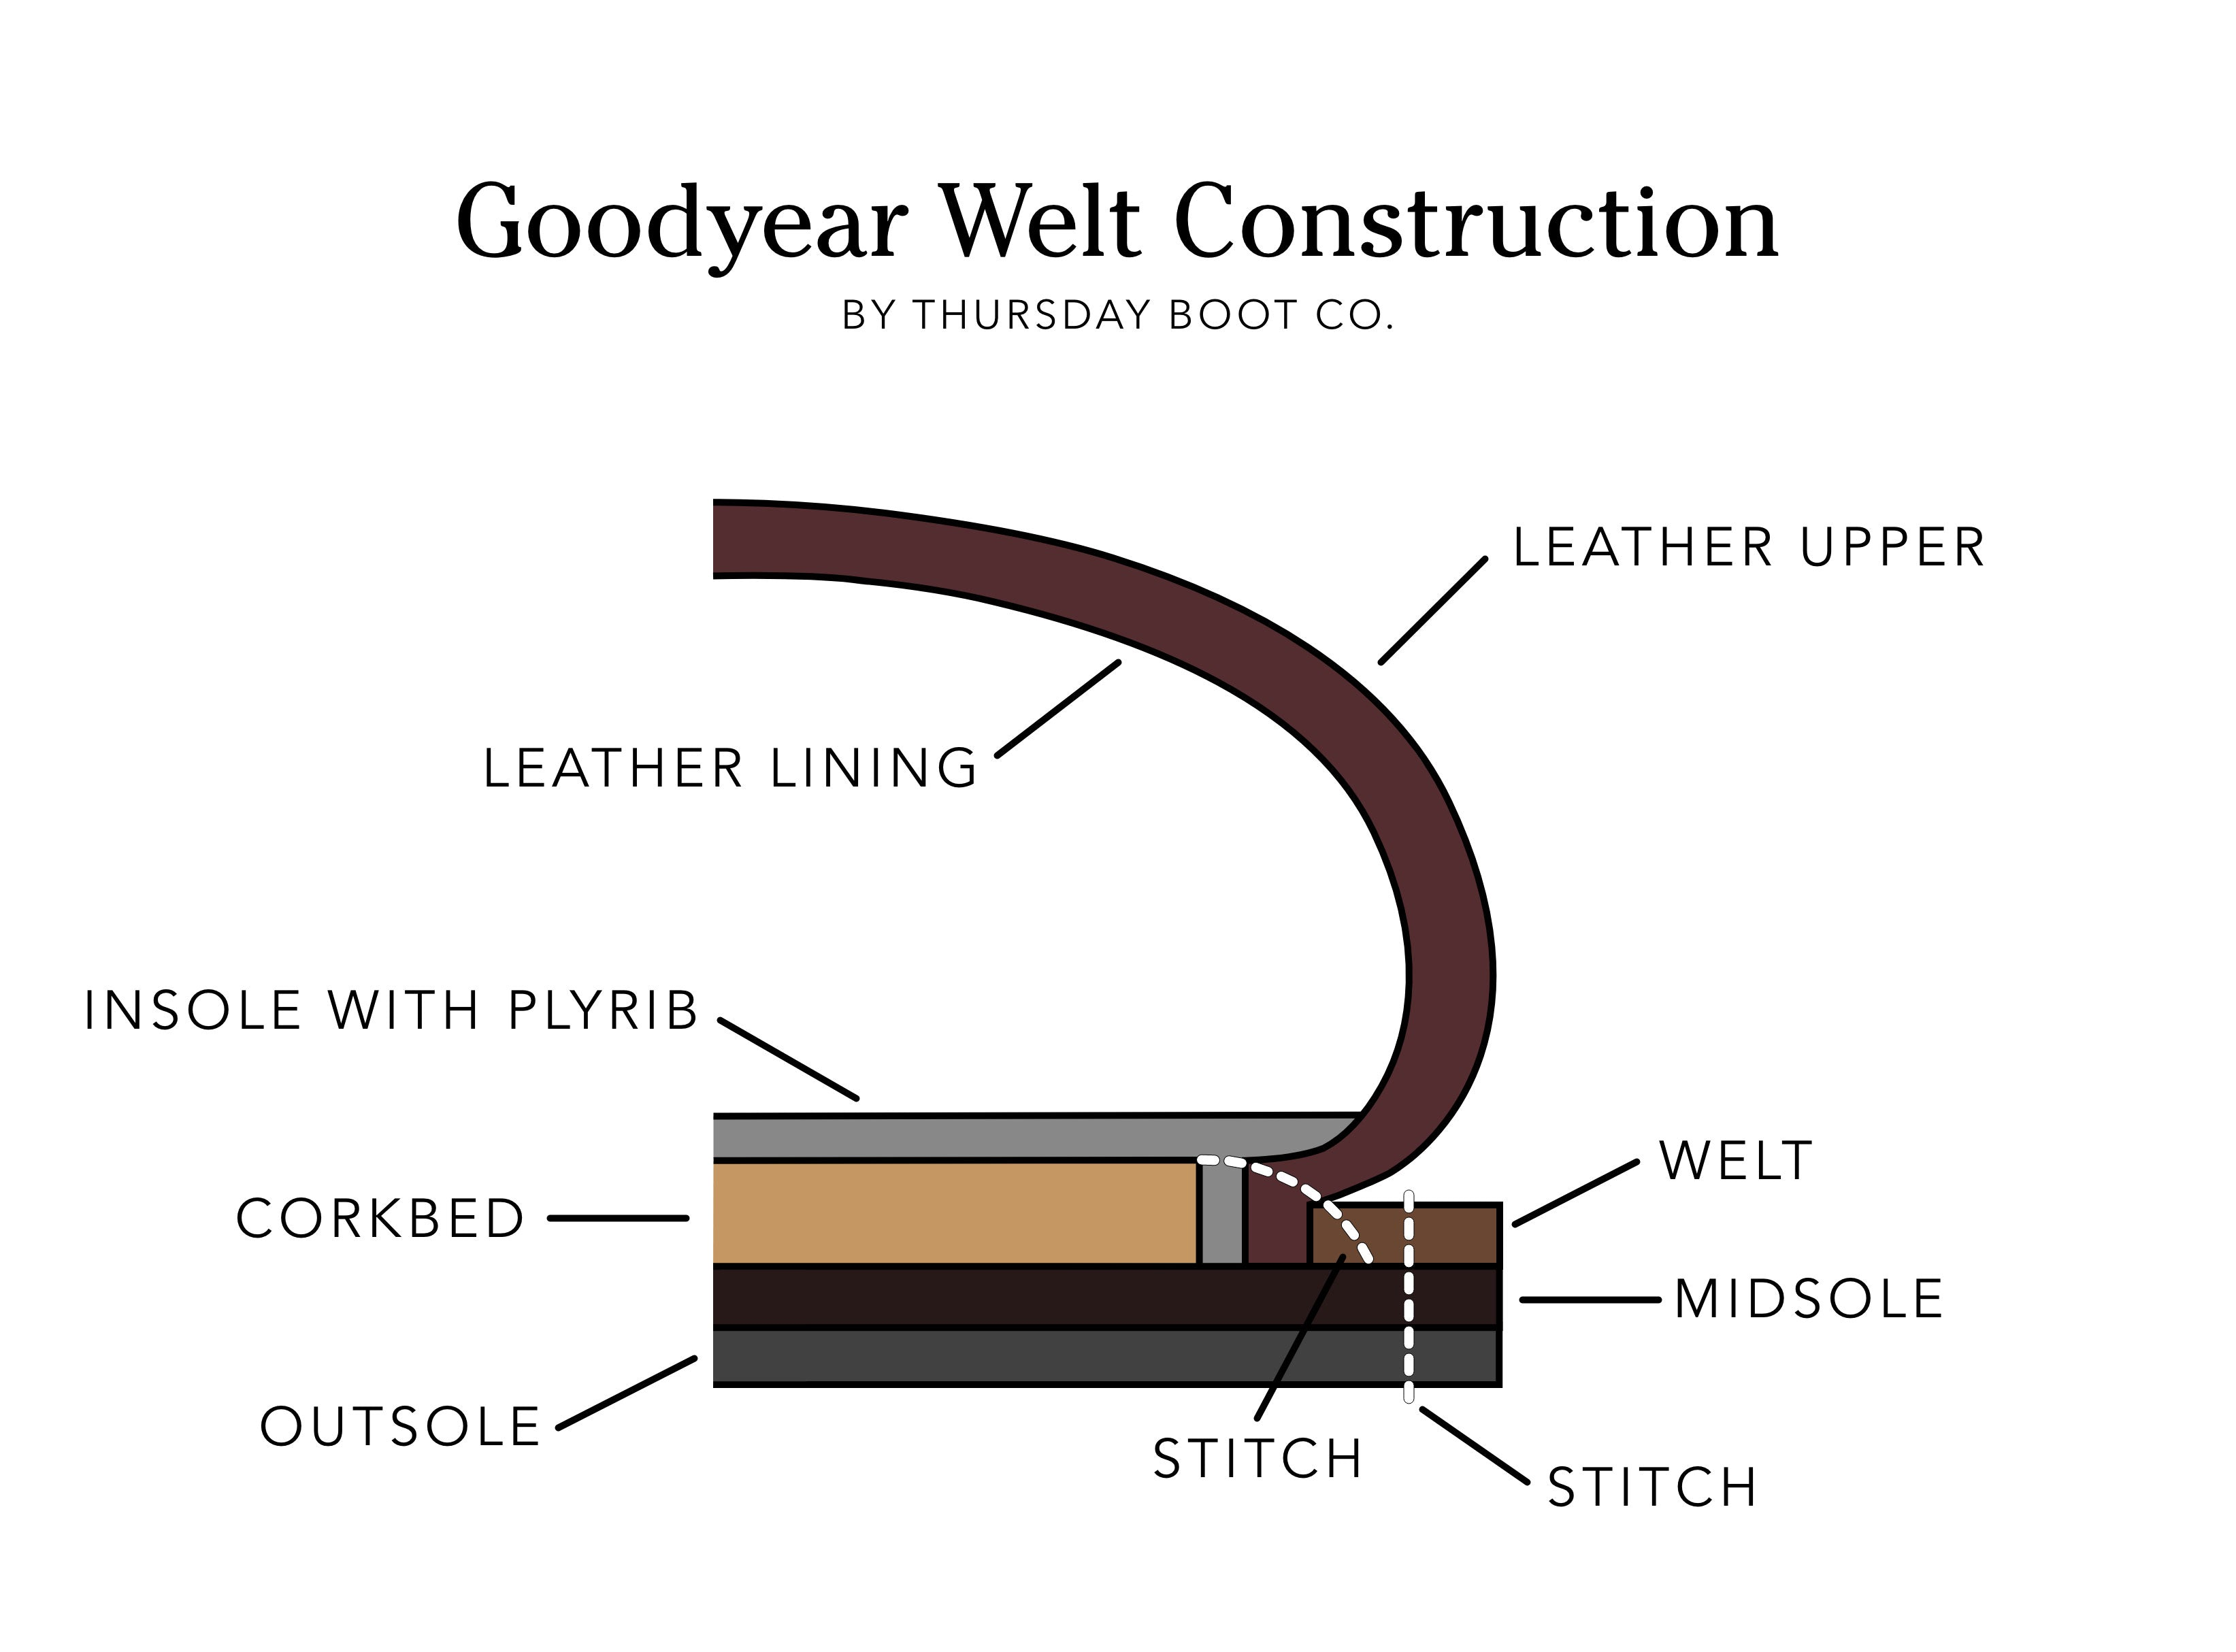 Goodyear Welt Construction Diagram: How They're Made